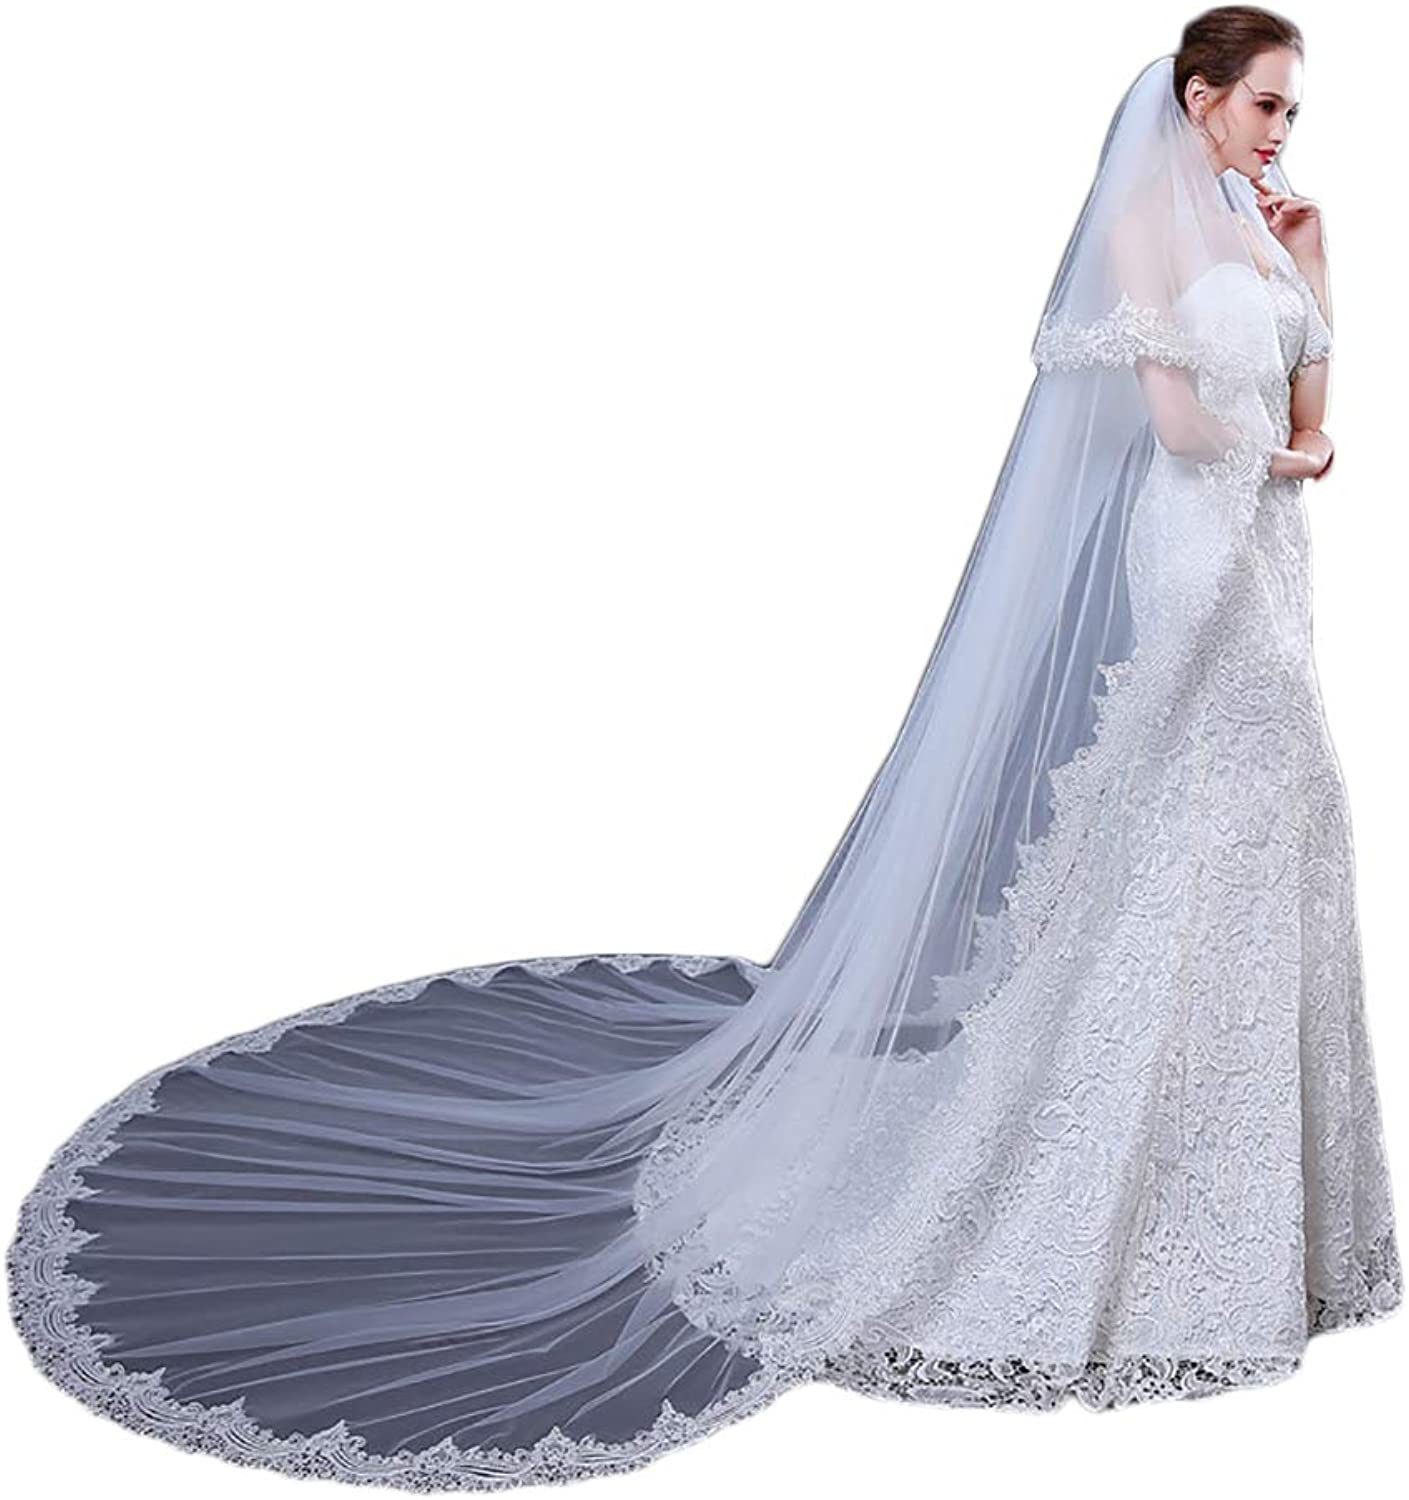 AliceHouse 2T 2 Tier Long Luxury Sequins Flower Cathedral Ivory Wedding Veils 12